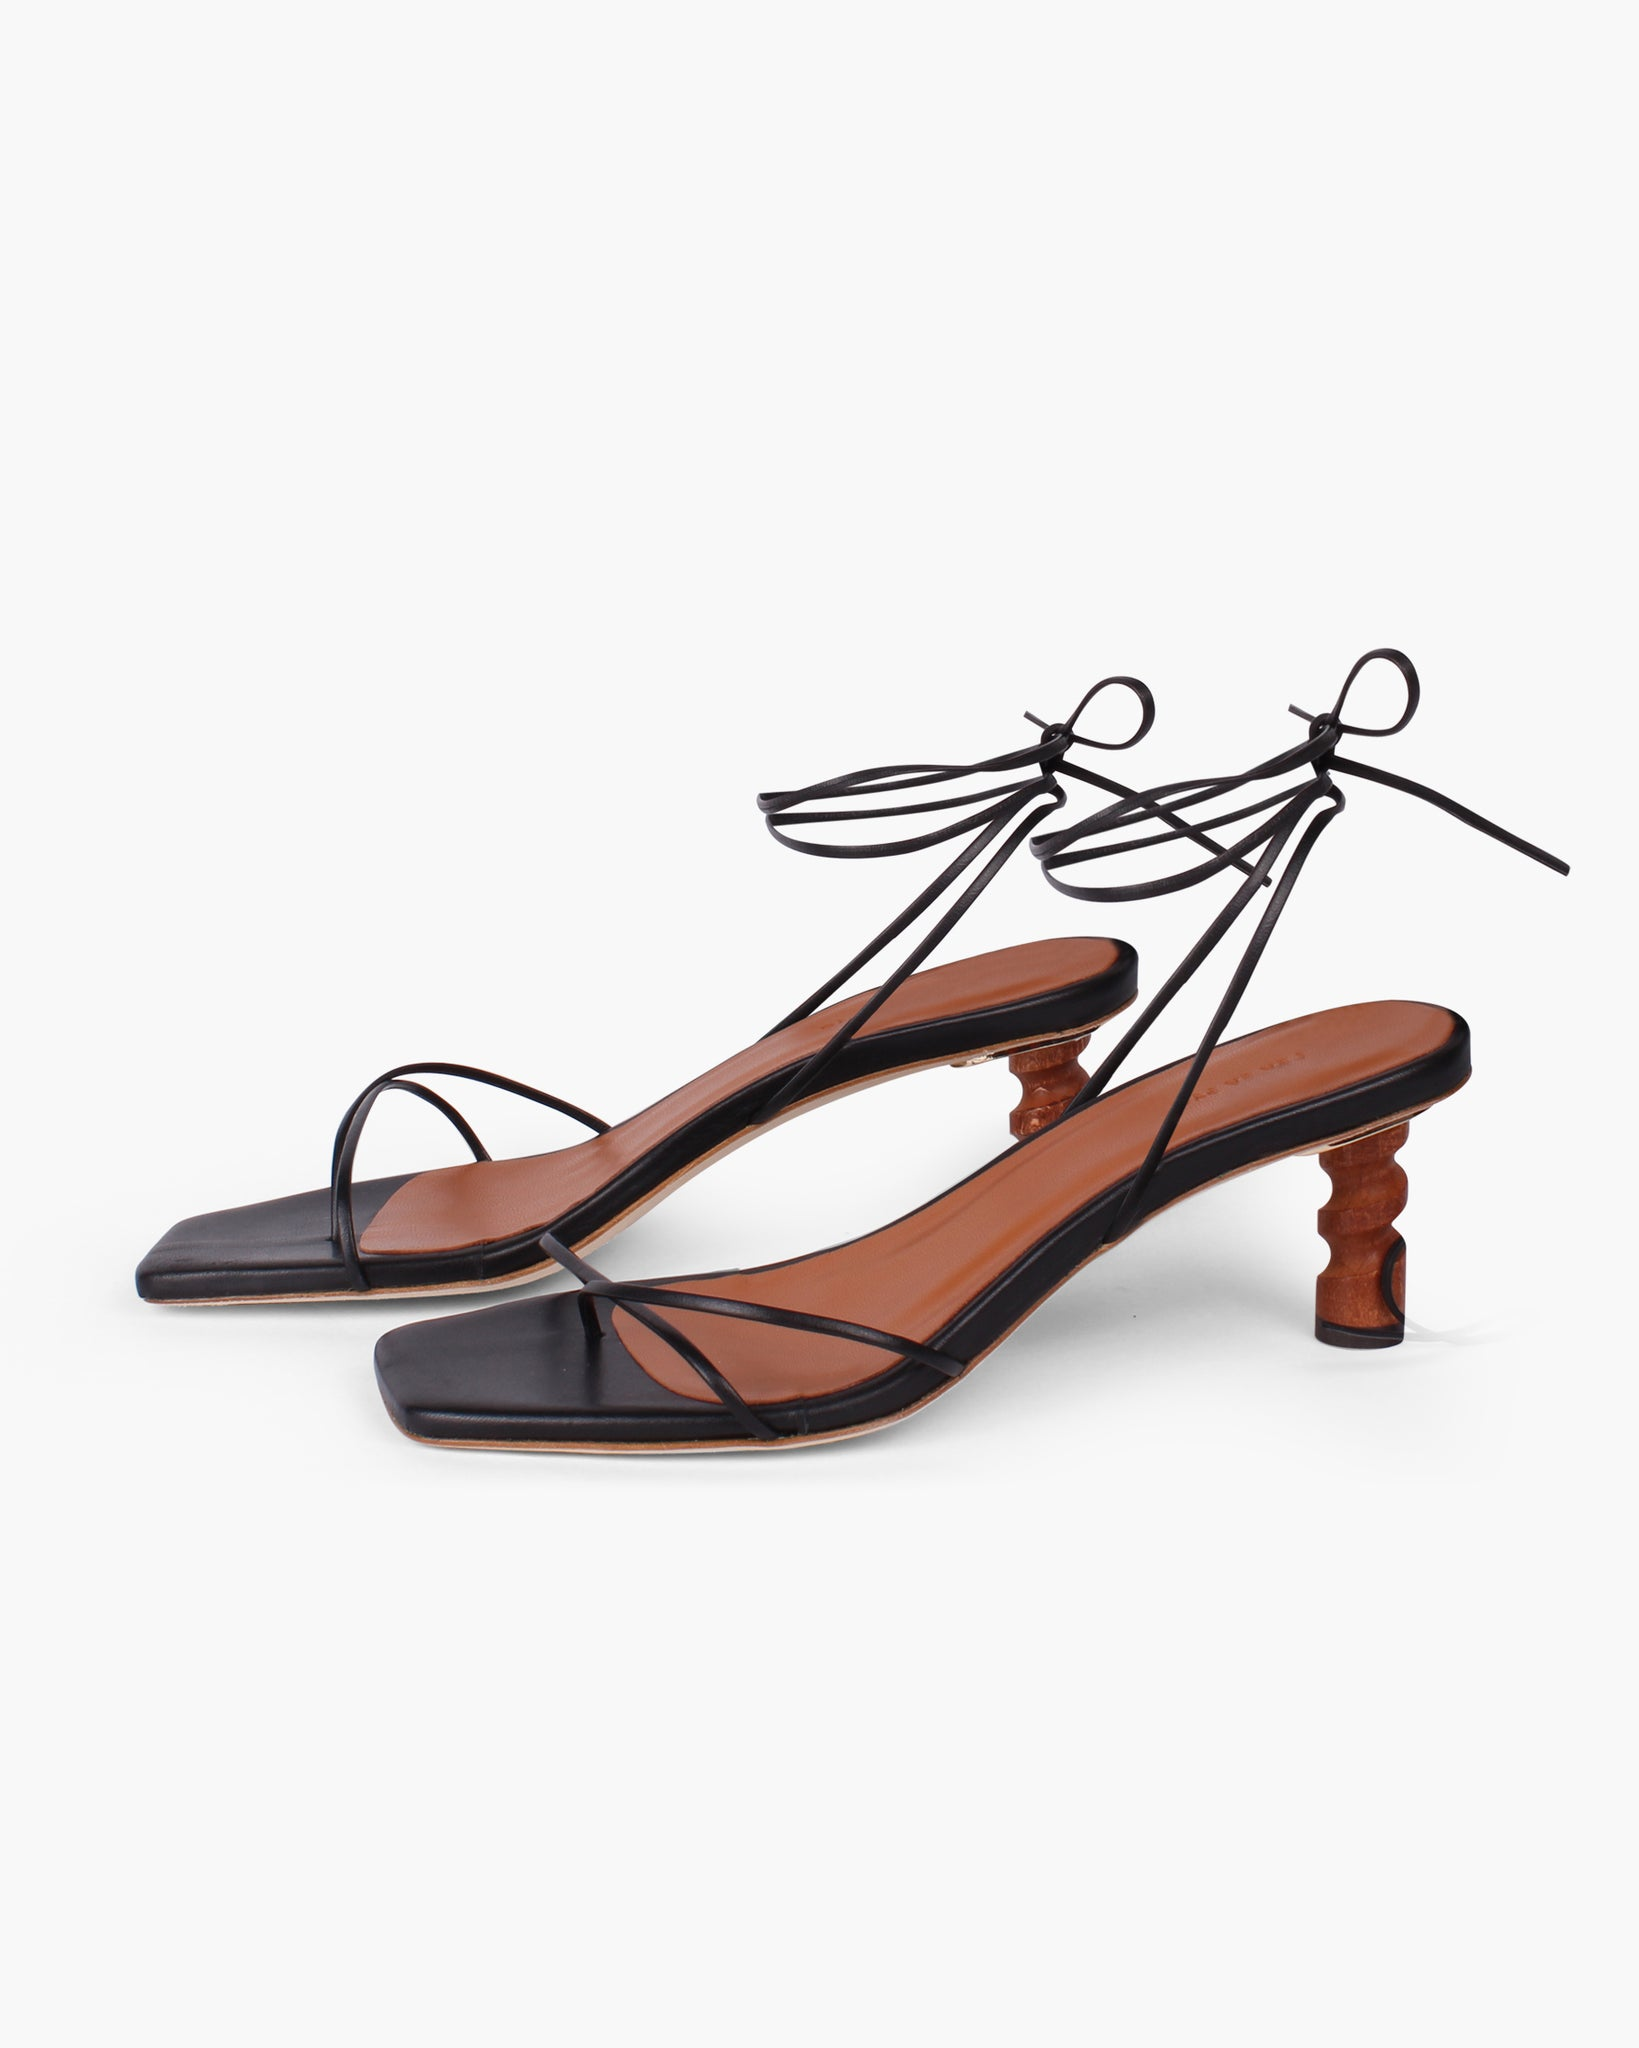 Doris Sandals Leather Black - SPECIAL PRICE